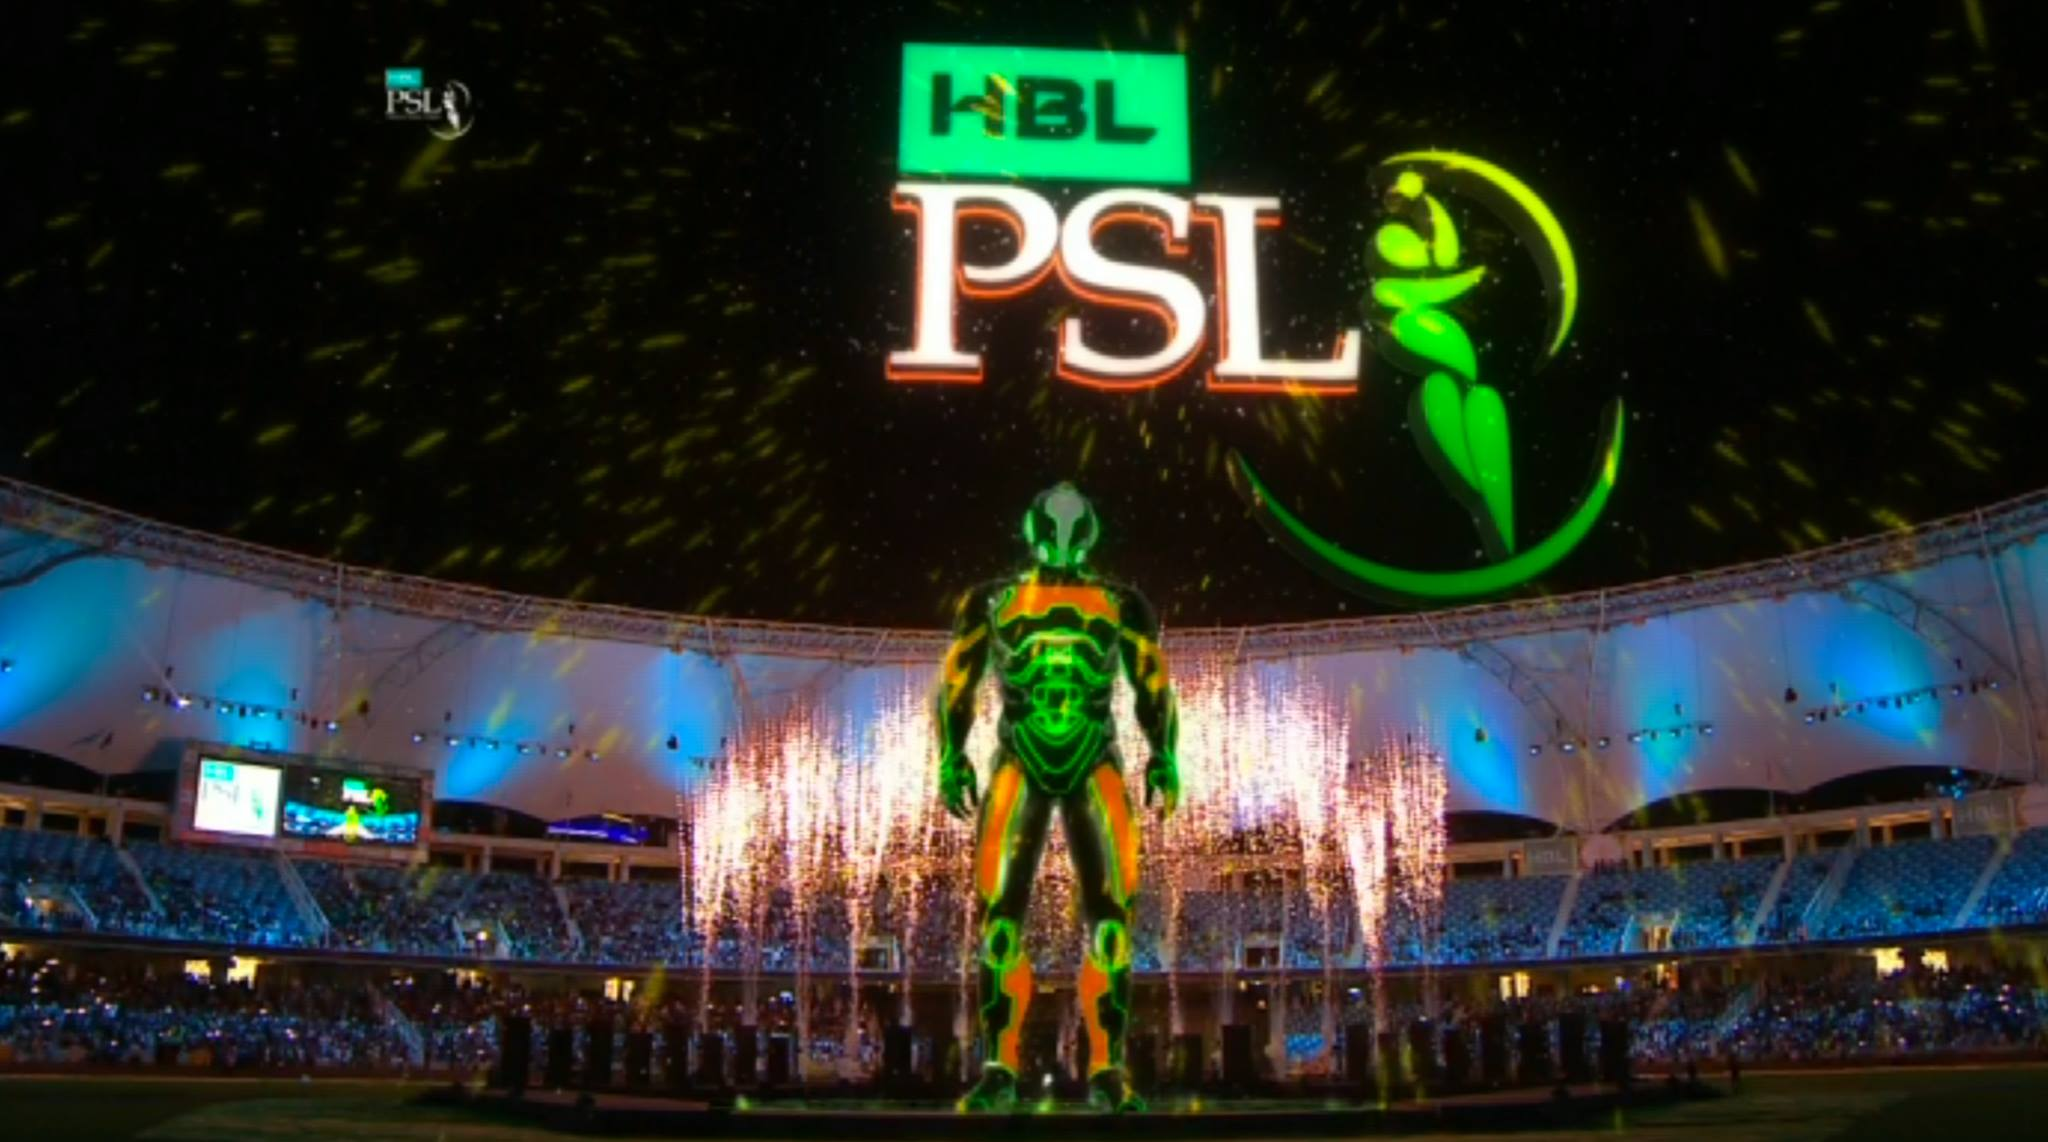 The fourth edition of Pakistan Super League has started a regular start today, in which the madness groups and other artists including Fawad Khan performed, PSL News